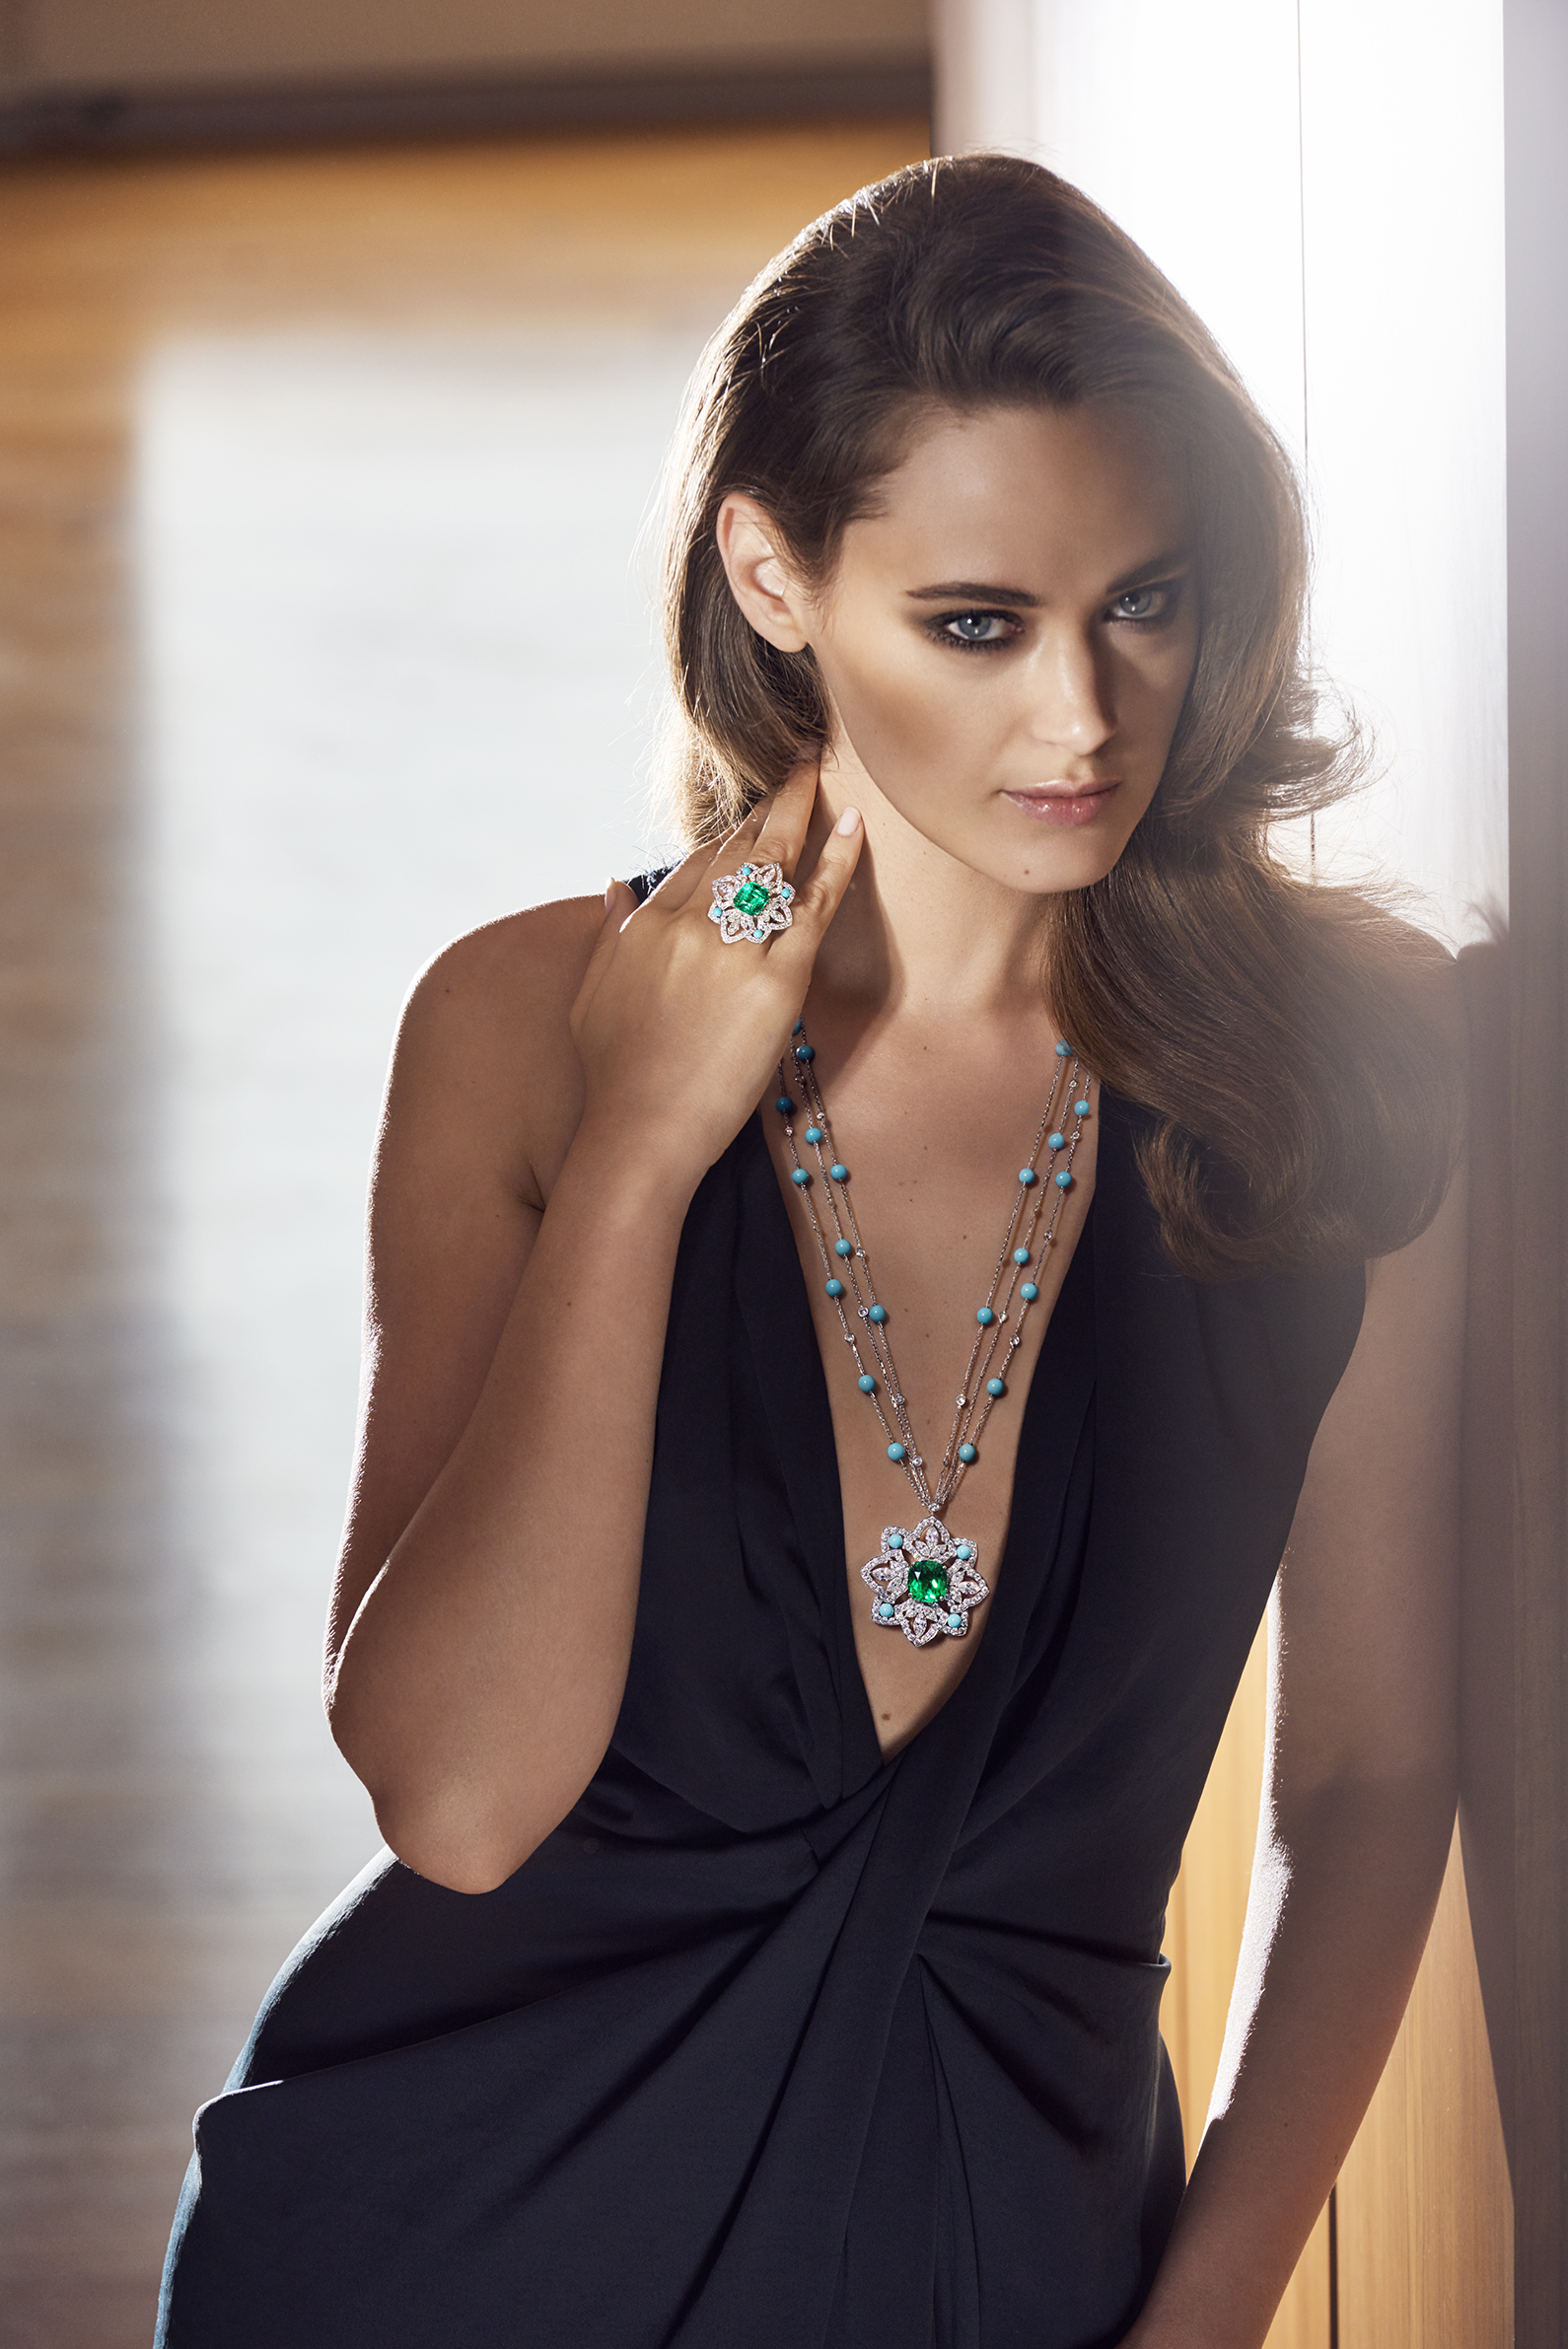 Necklace in 18K white gold set with 1 cushion-cut emerald (approx. 11.16 cts), 12 marquise-cut diamonds (approx. 4.20 cts), 32 turquoise beads (approx. 11.10 cts) and 151 brilliant-cut diamonds (approx. 9.86 cts). Ring in 18K white gold set with 1 cushion-cut emerald (approx. 7.29 cts), 12 marquise-cut diamonds (approx. 1.20 cts), 4 turquoise beads (approx. 0.50 ct) and 130 brilliant-cut diamonds (approx. 3.12 cts). Ring in 18K white gold set with 1 cushion-cut emerald (approx. 7.29 cts), 12 marquise-cut diamonds (approx. 1.20 cts), 4 turquoise beads (approx. 0.50 ct) and 130 brilliant-cut diamonds (approx. 3.12 cts).